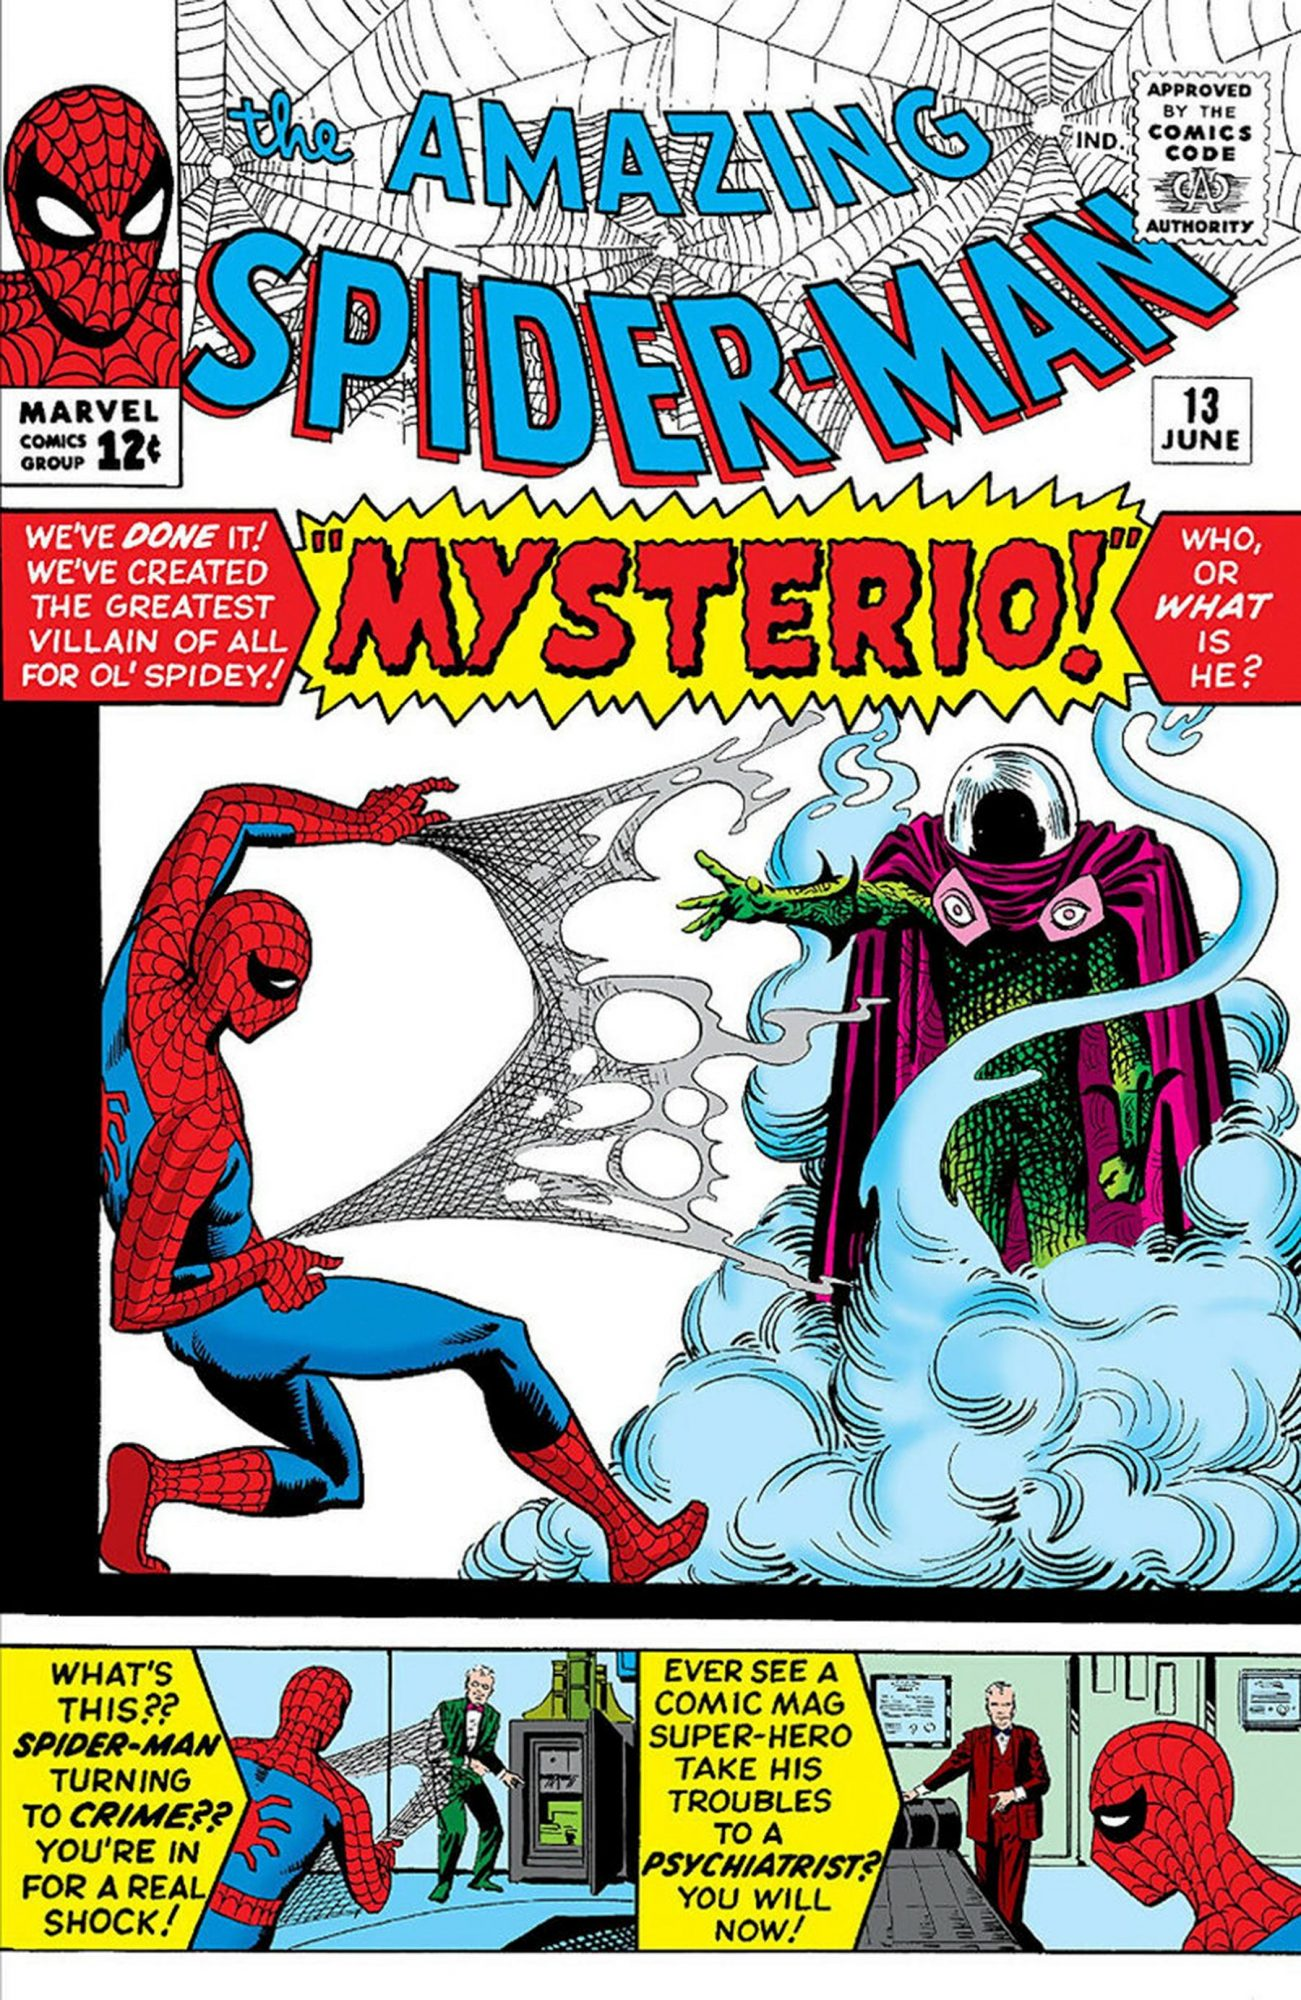 The Amazing Spider-Man (1963) #13 Published: June 10, 1964 CR: Marvel